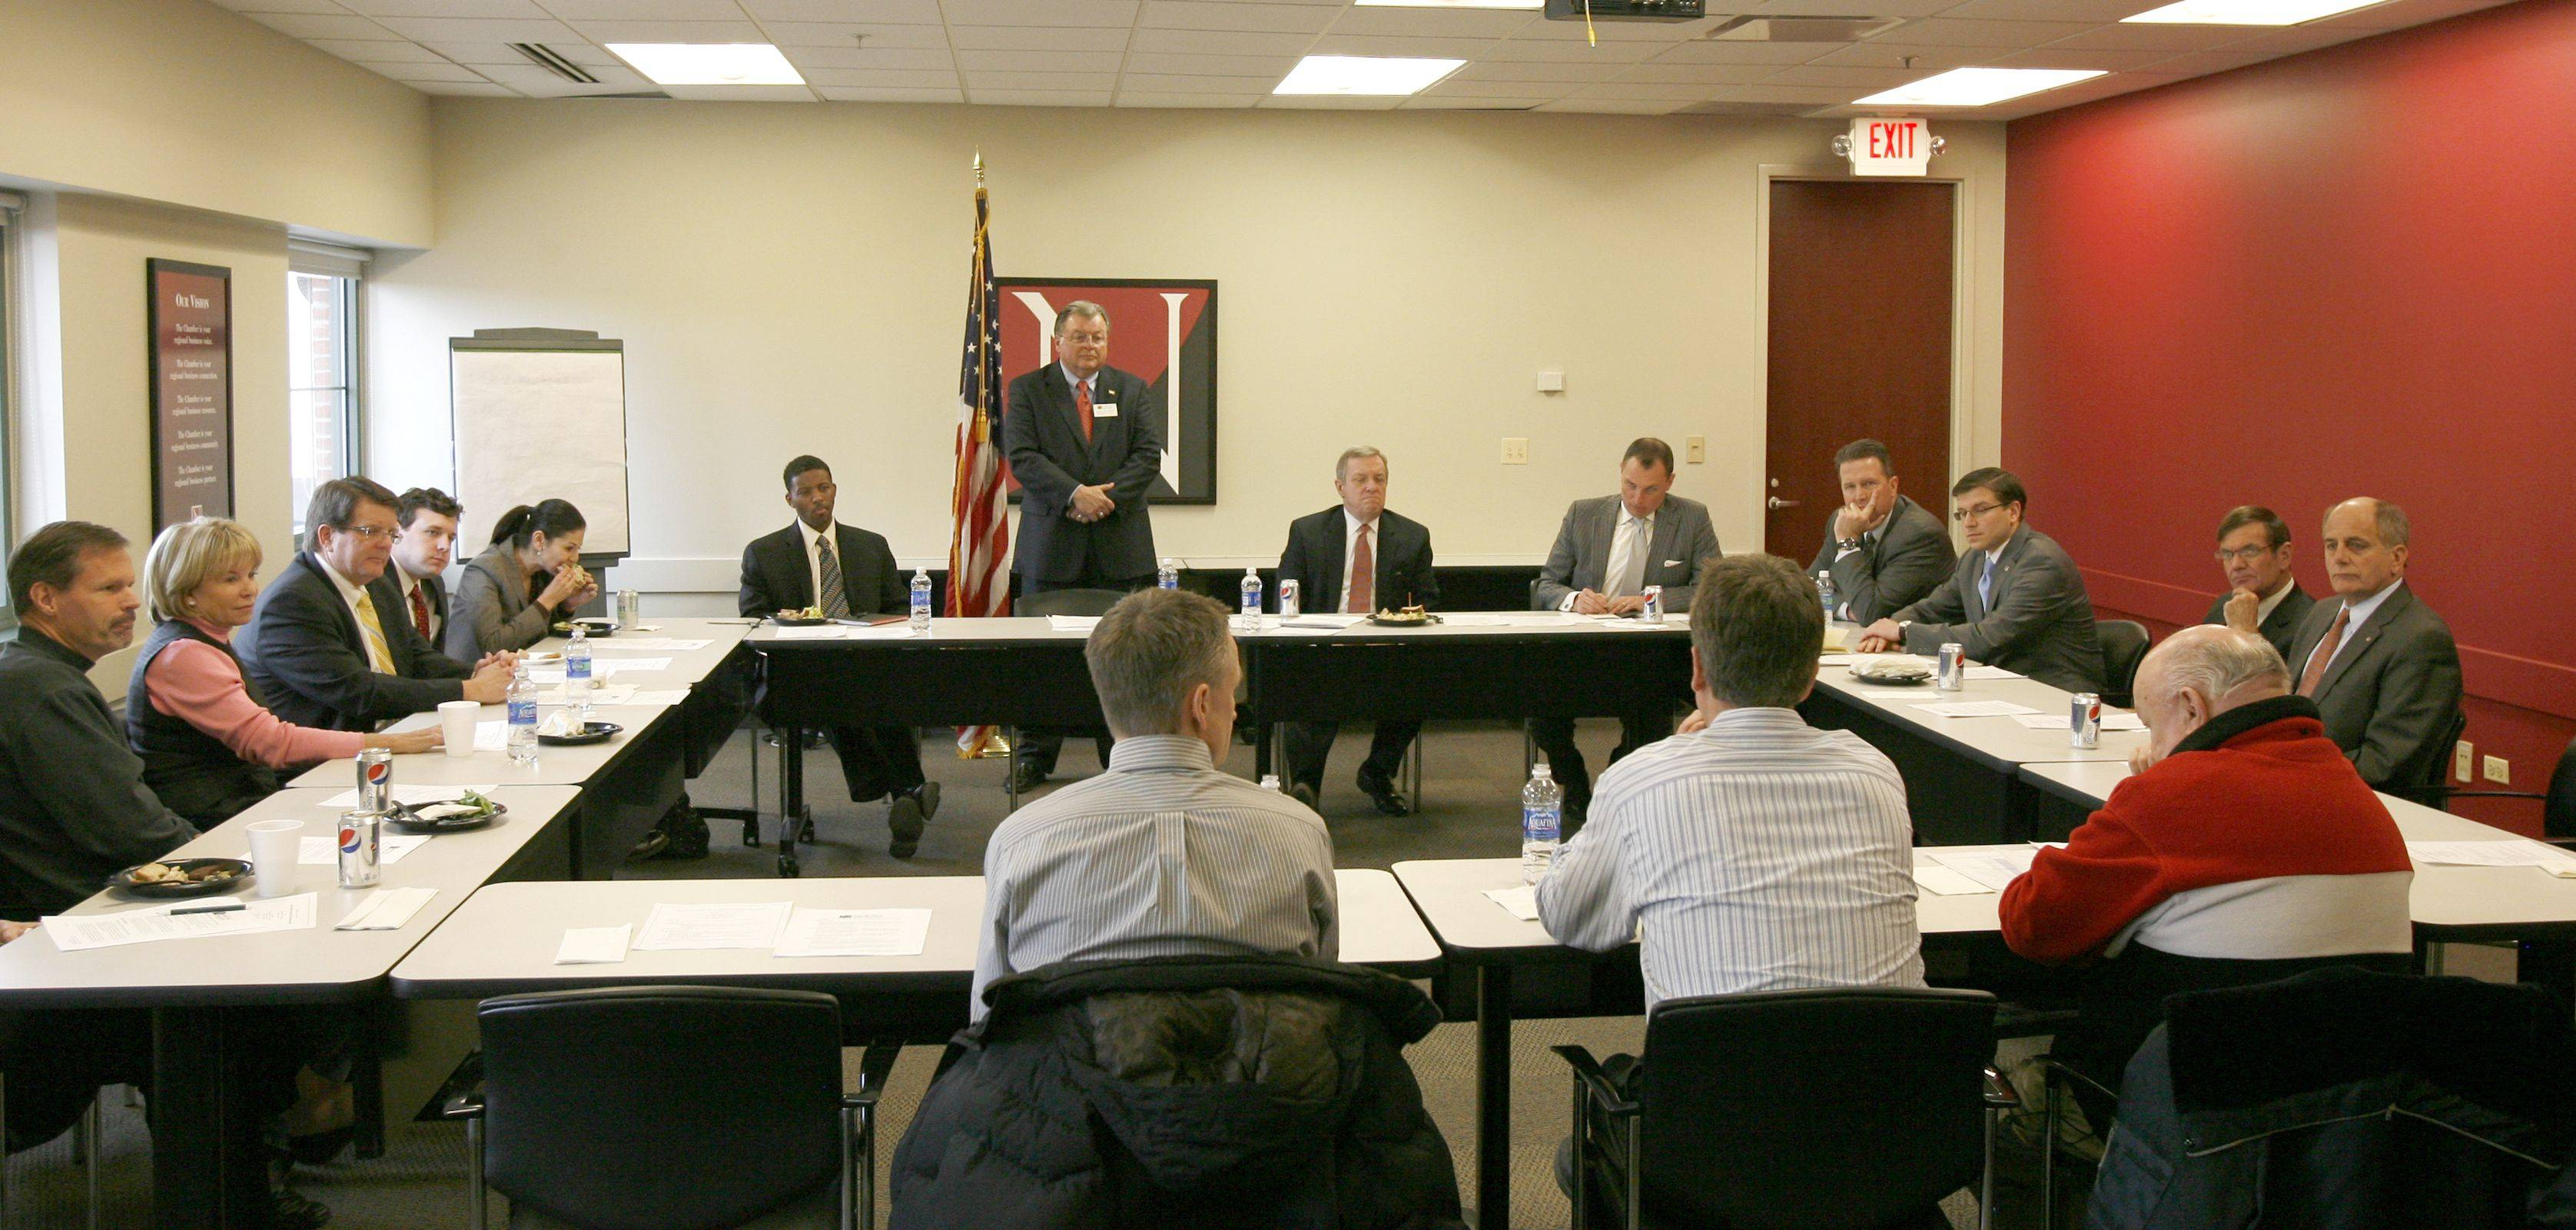 Sen. Dick Durbin met with members of the Naperville Area Chamber of Commerce Thursday to discuss policy issues and concerns of the business community.